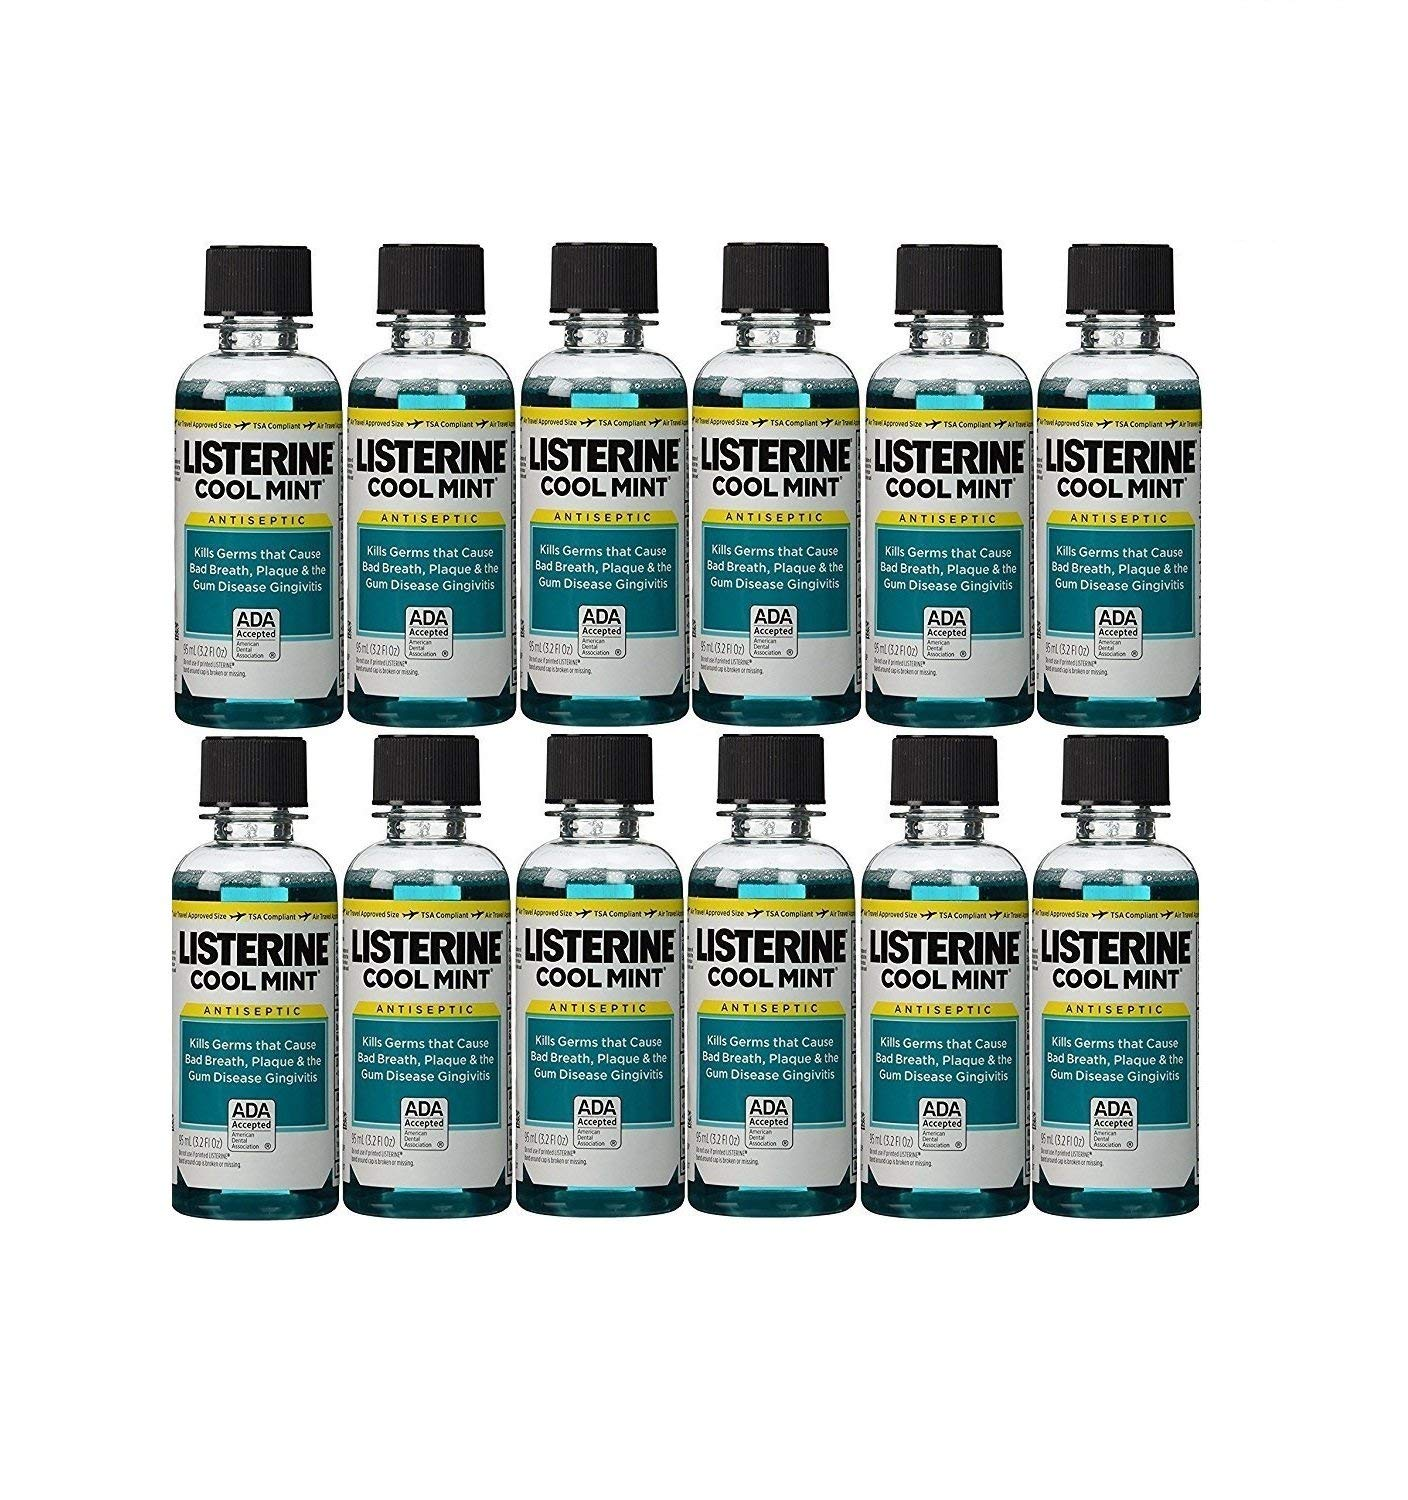 Listerine Cool Mint Antiseptic Mouthwash for Bad Breath, Travel Size 3.2 oz - Pack of 12